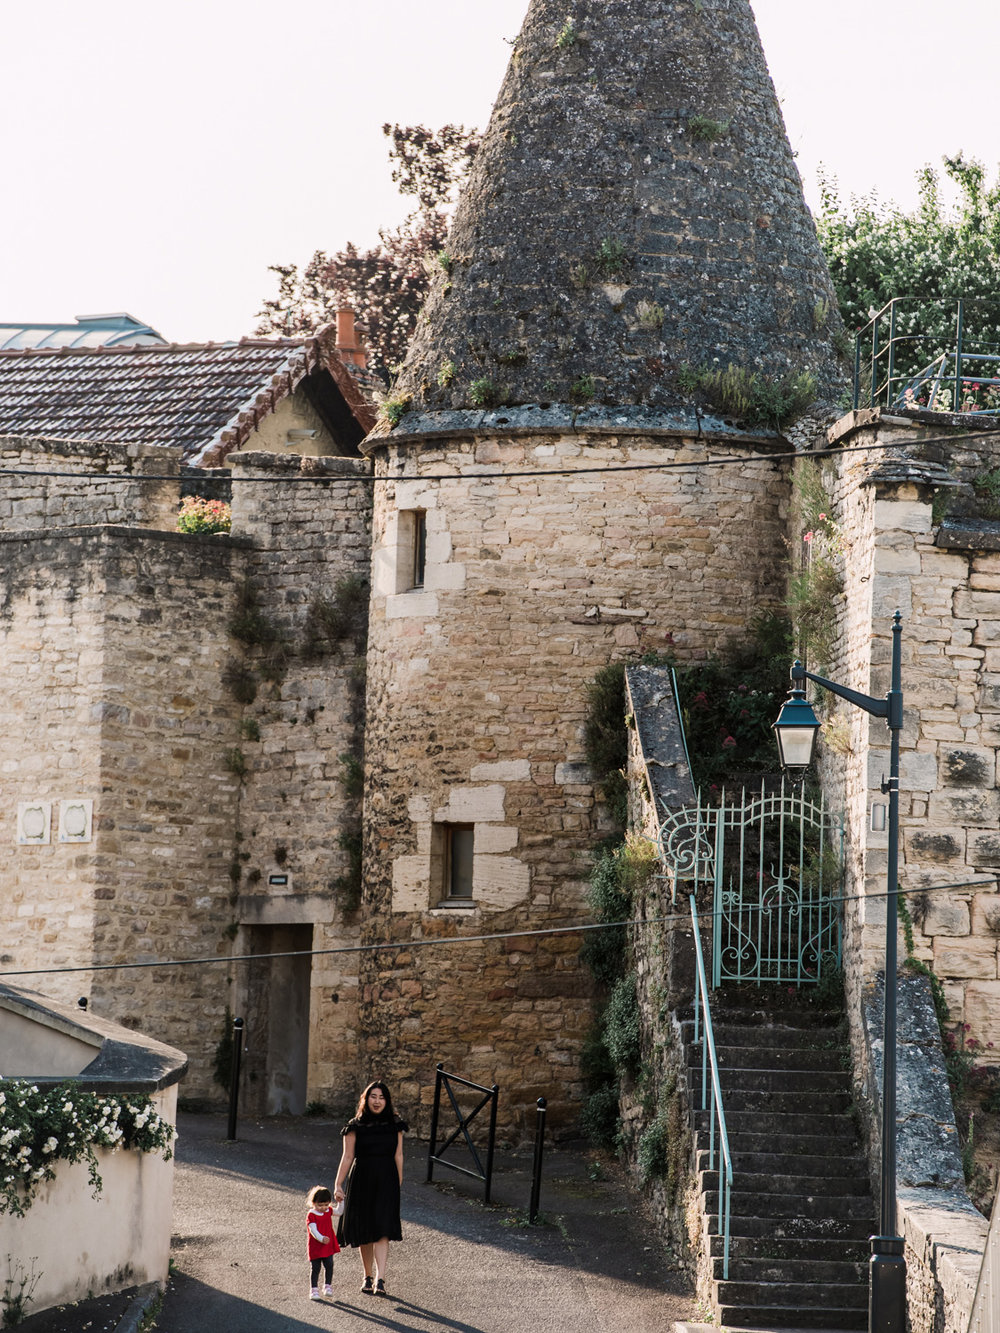 Walking past a beautiful old stone tower in Beaune, France.